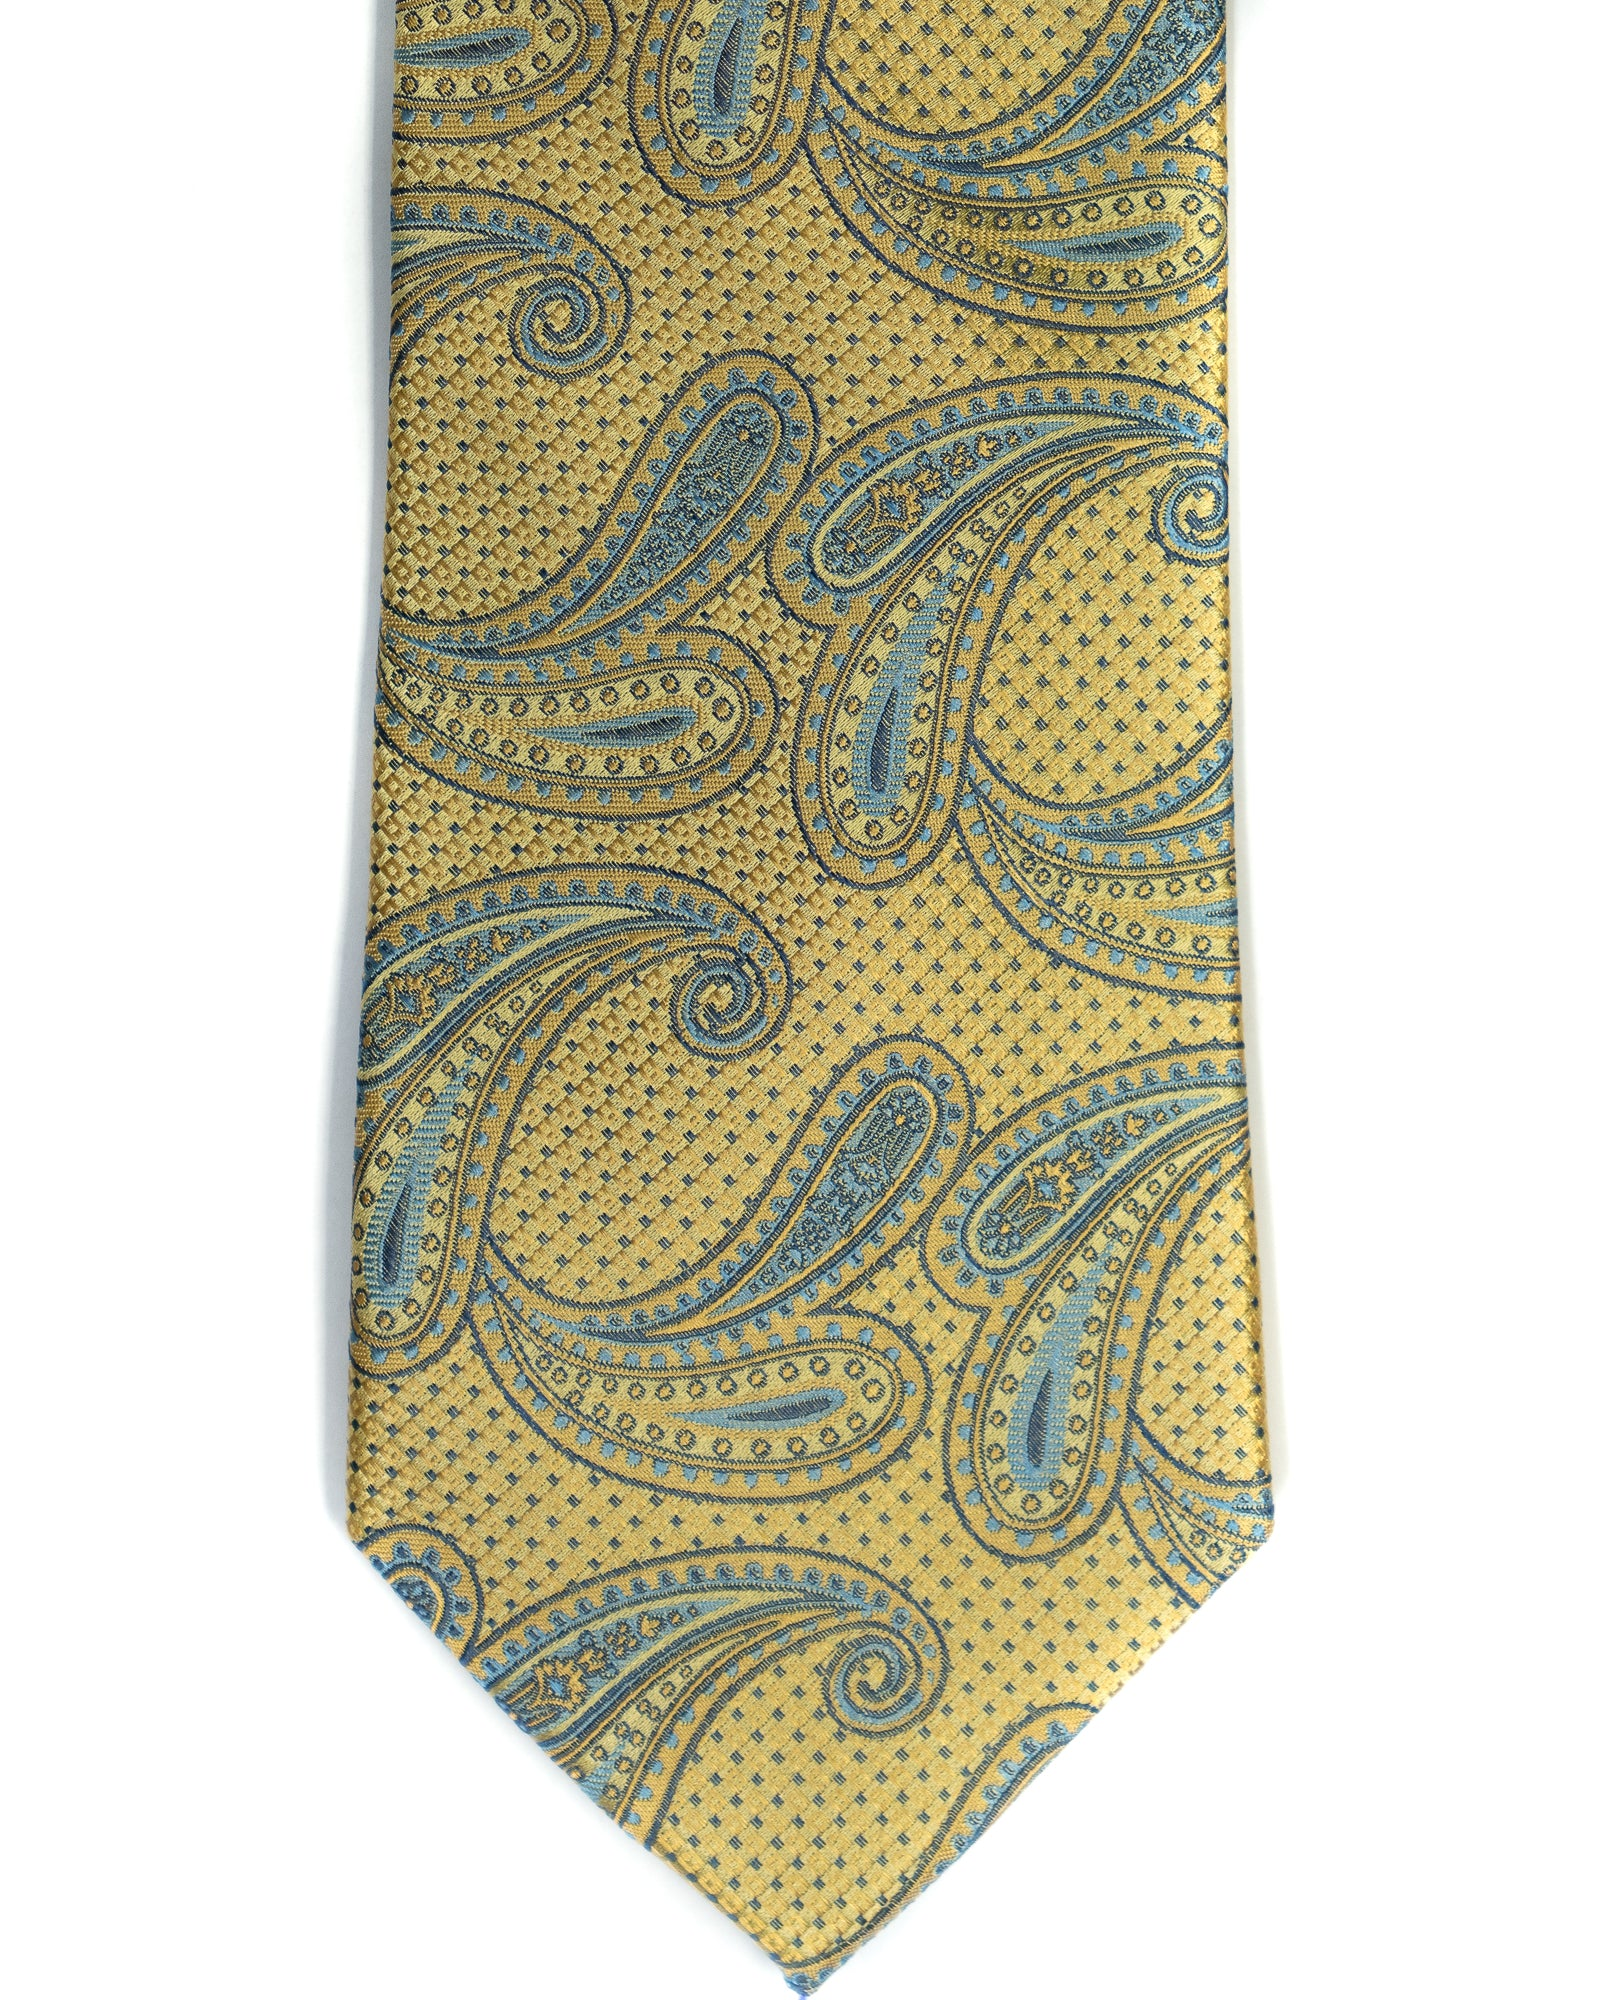 Paisley Silk Tie in Yellow With Light Blue - Rainwater's Men's Clothing and Tuxedo Rental